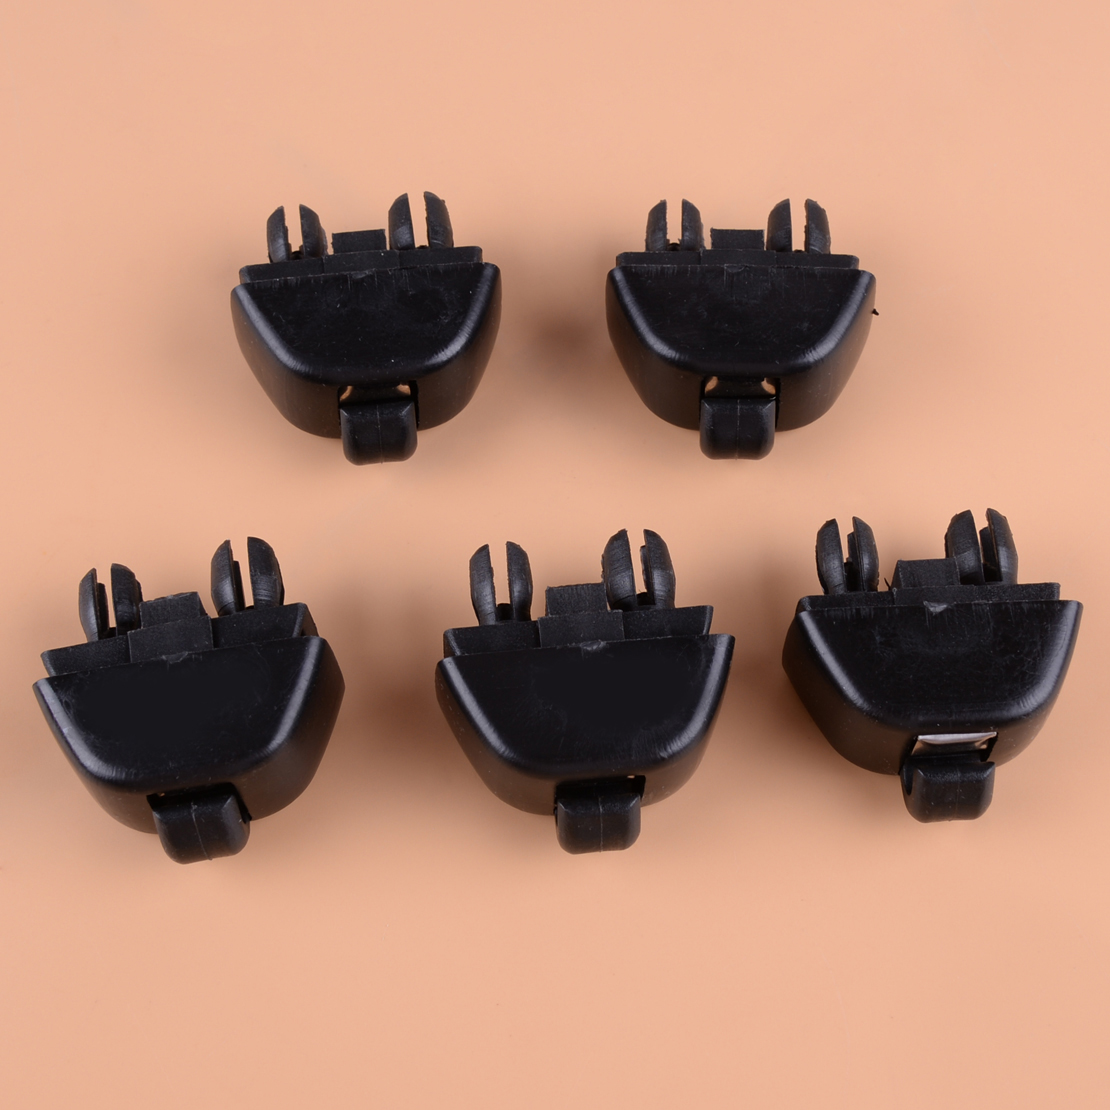 CITALL 5Pcs Black Car Inner Sun Visor Hook Clip Fit for Audi A6 C6 2004 2005 2006 2007 2008 2009 2010 2011 4F0857561 image